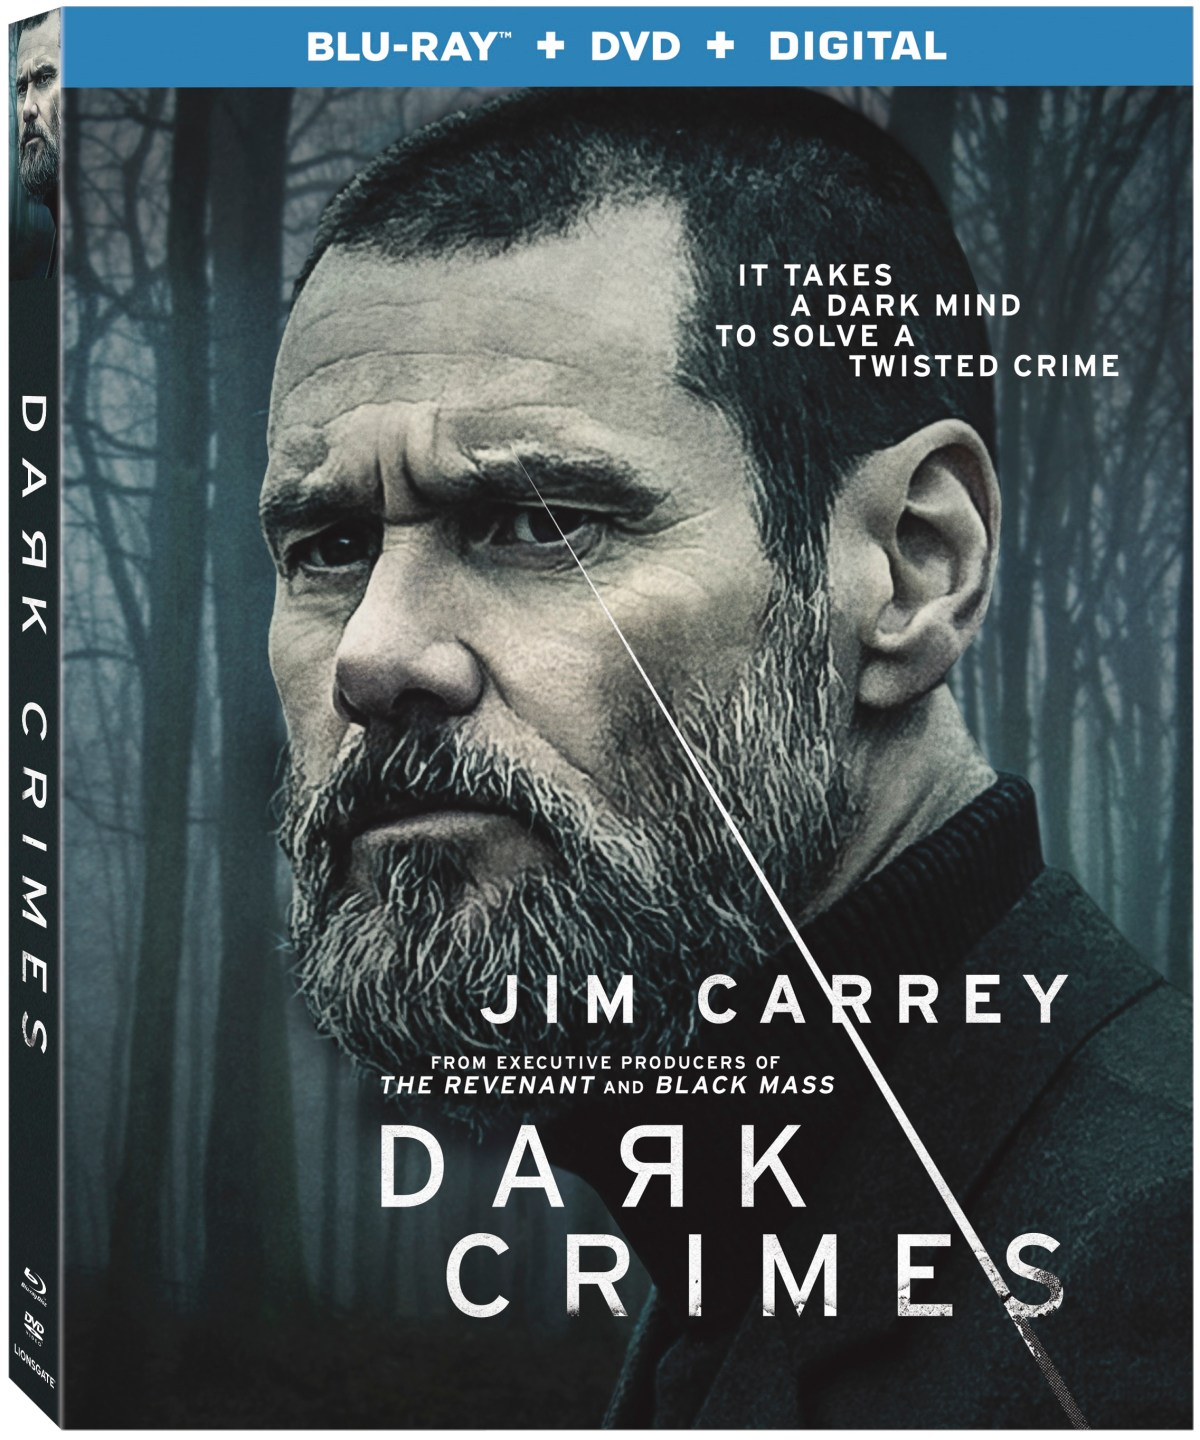 Jim Carrey Stars In The Thriller 'Dark Crimes'; Arrives On Blu-ray & DVD July 31, 2018 From Lionsgate 1